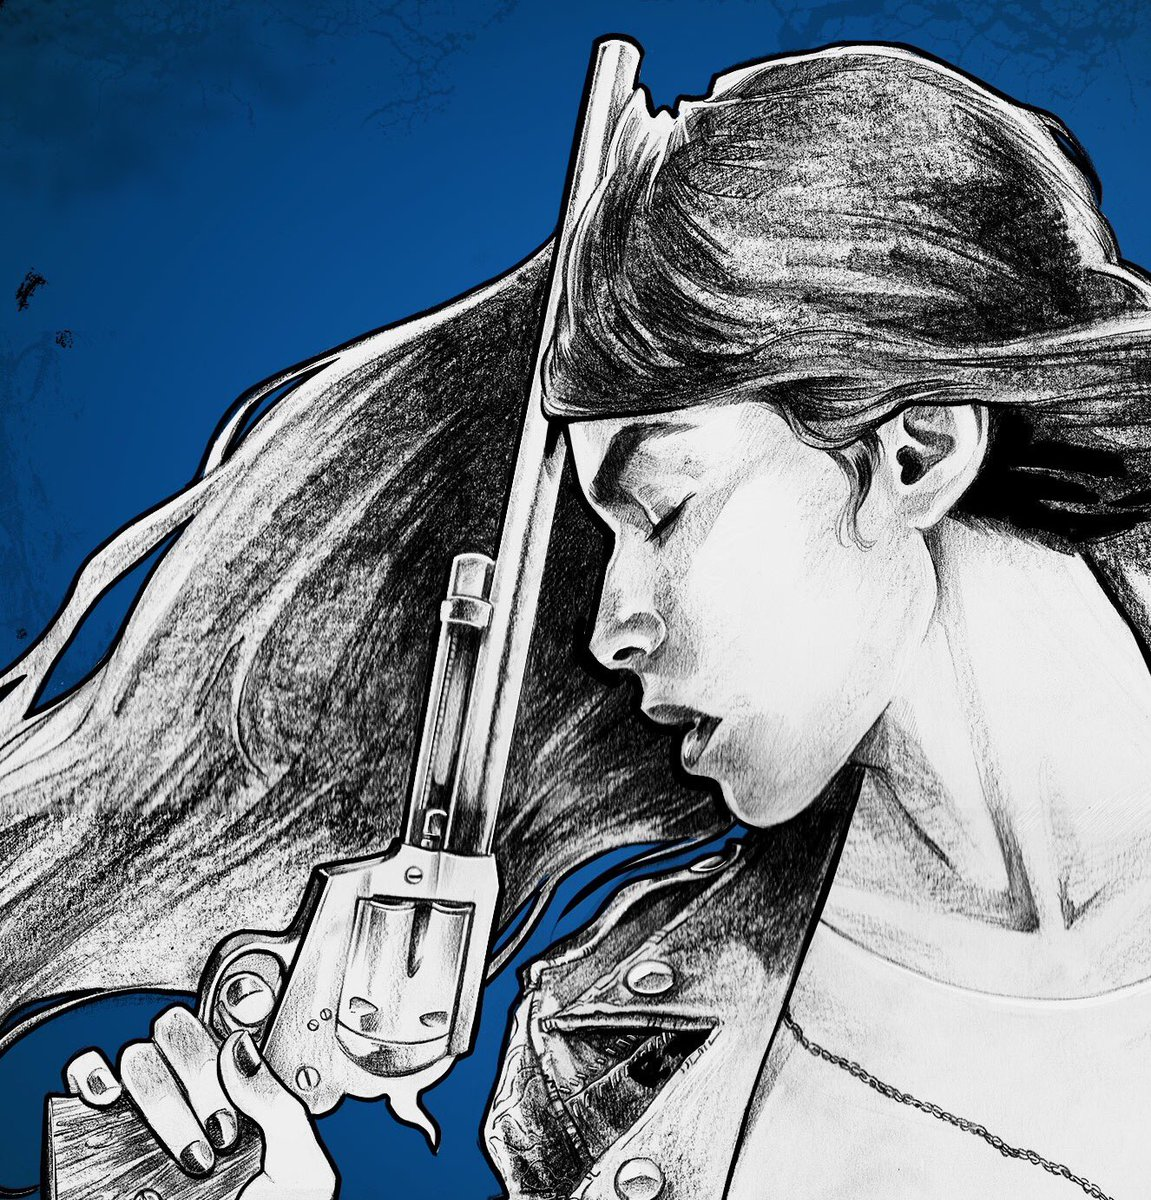 I'm Lora Innes & I draw @WynonnaEarp & my RevWar time-travel epic The Dreamer: https://t.co/2txkSprZhO #VisibleWomen https://t.co/mPioqCEhyd